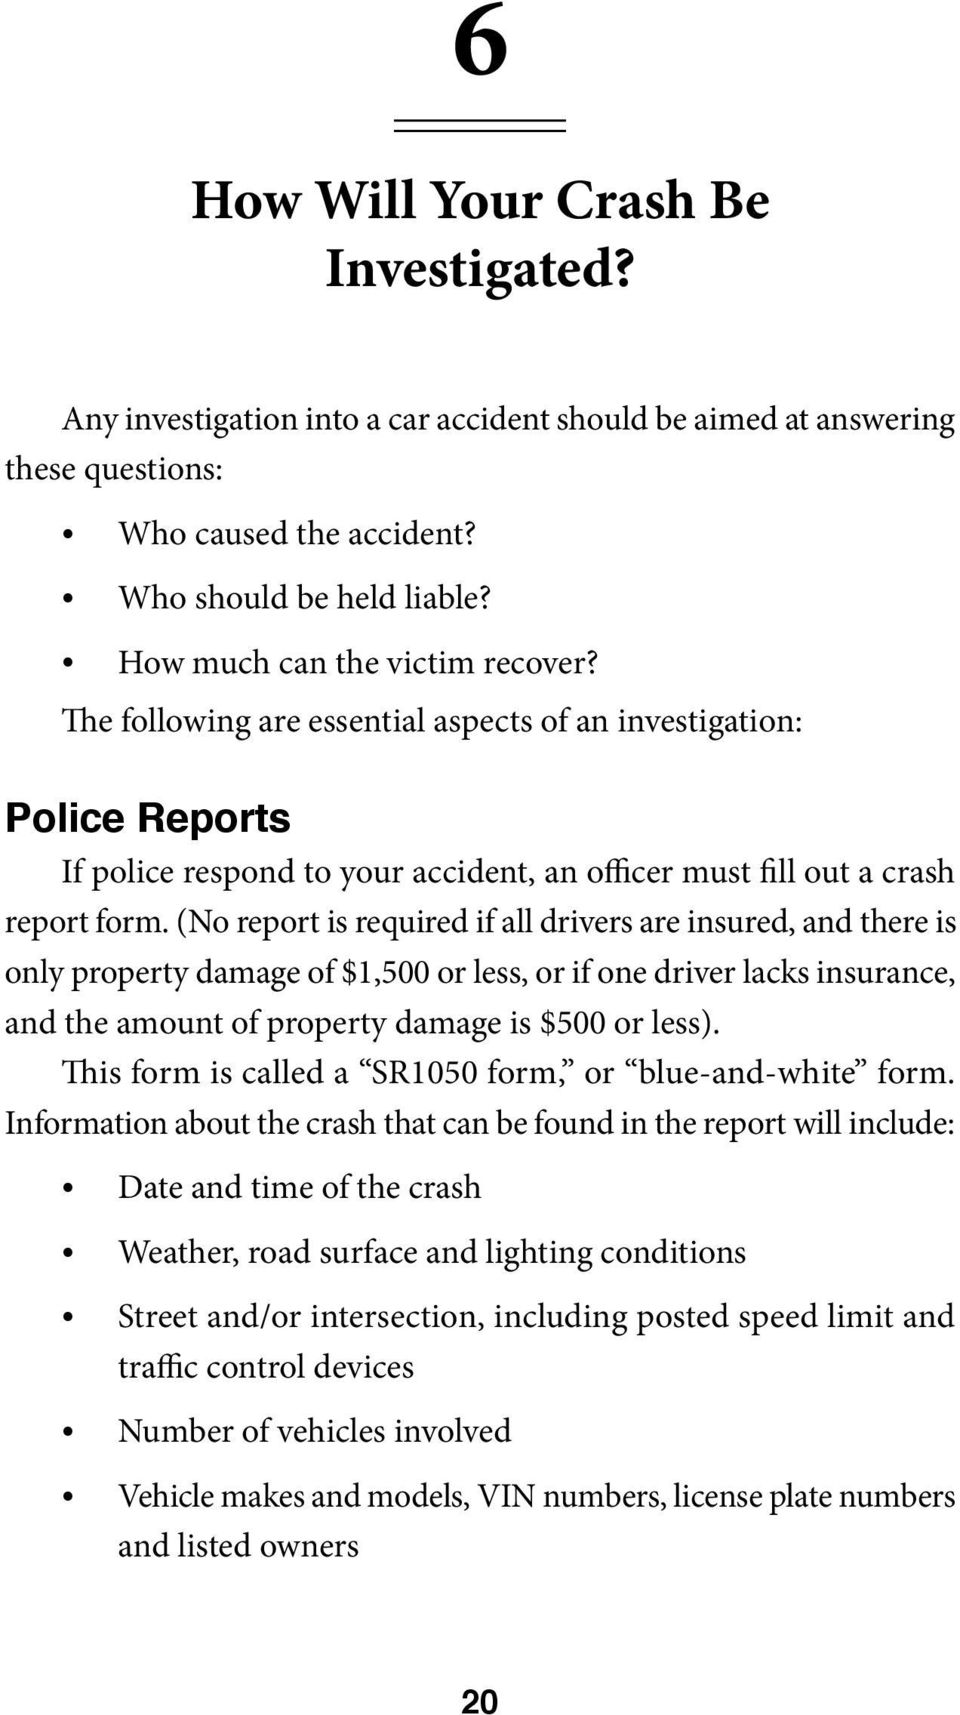 (No report is required if all drivers are insured, and there is only property damage of $1,500 or less, or if one driver lacks insurance, and the amount of property damage is $500 or less).